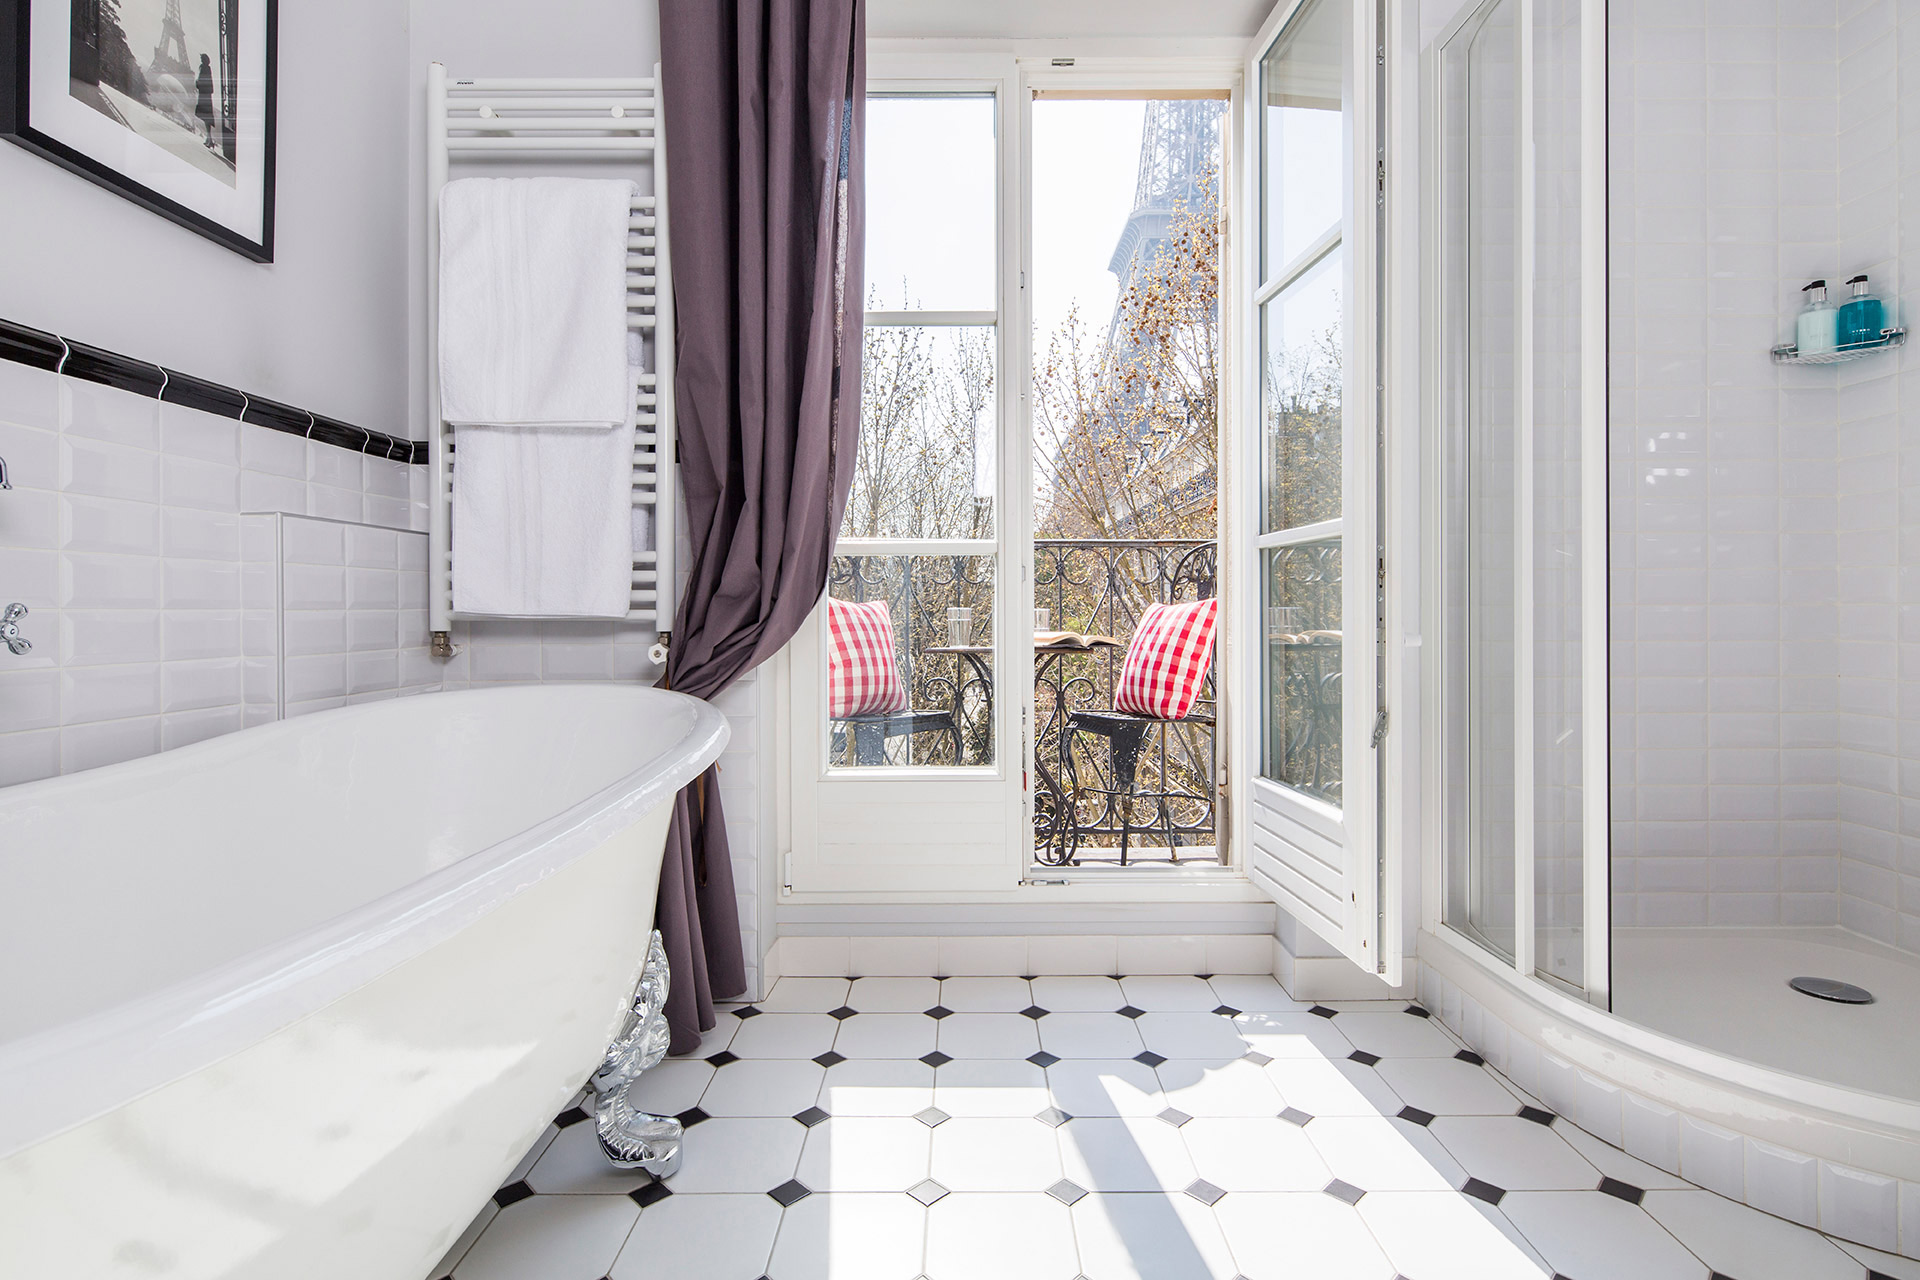 Amazing bathroom with claw foot tub and Eiffel Tower views